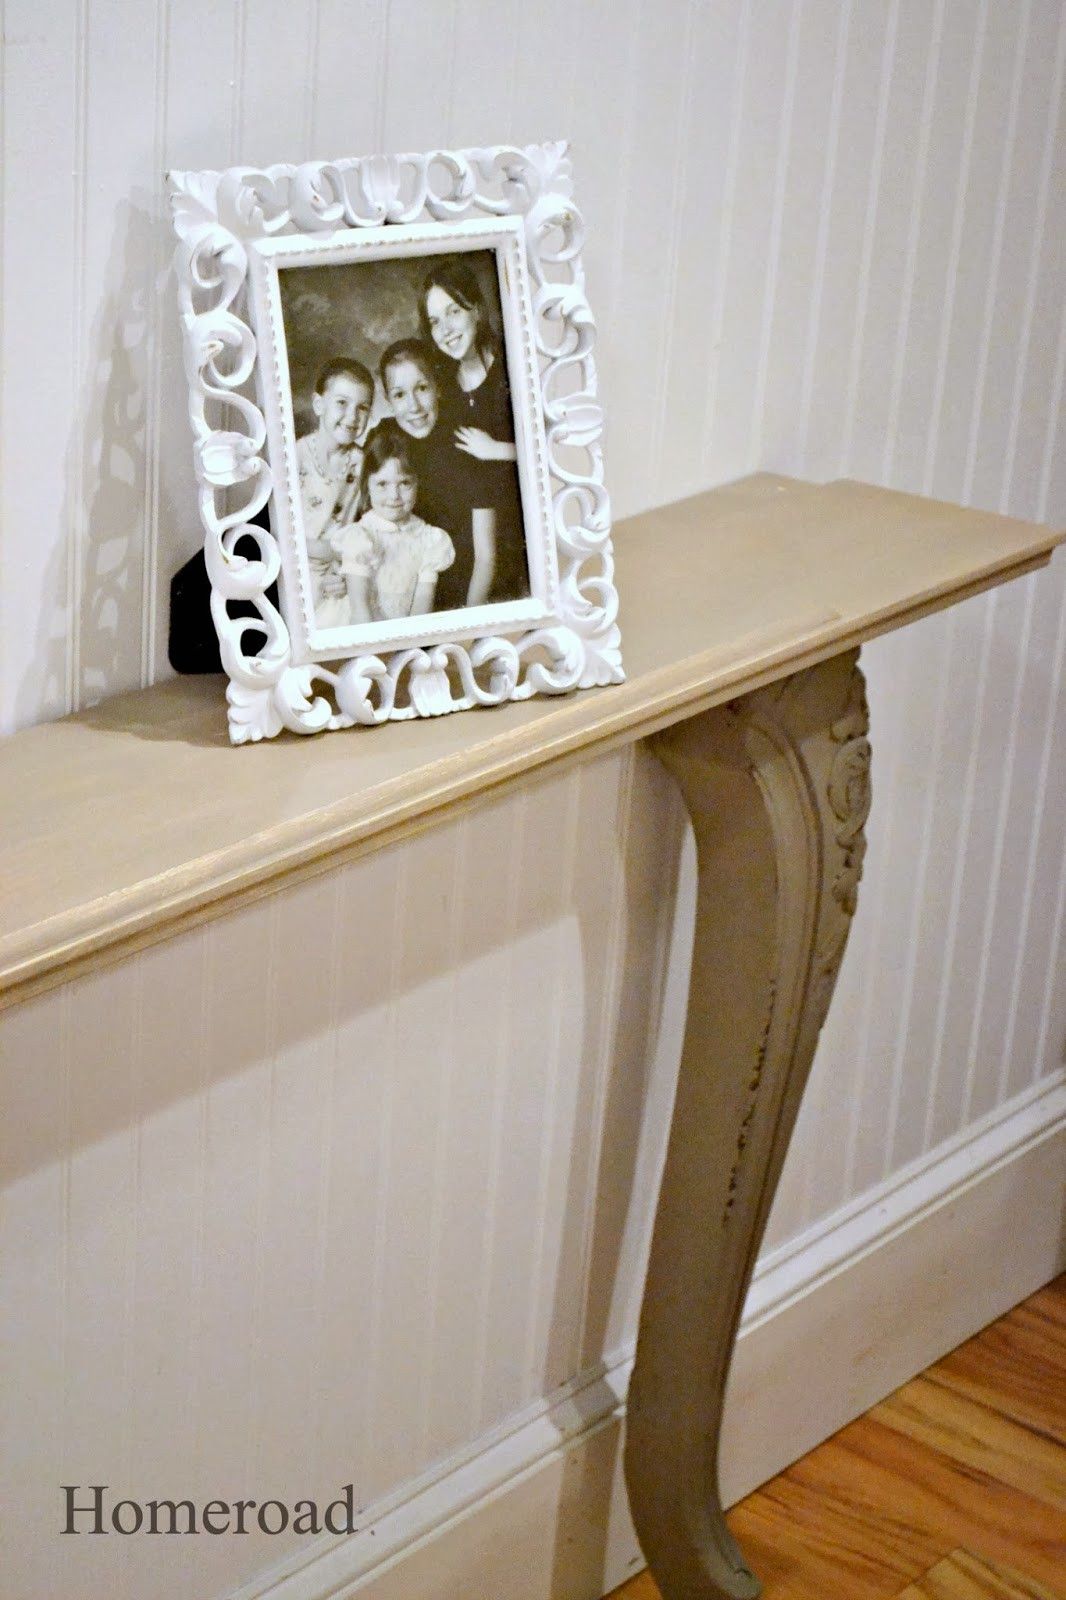 Best ideas about DIY Wall Table . Save or Pin DIY Narrow Wall or Sofa Table Now.